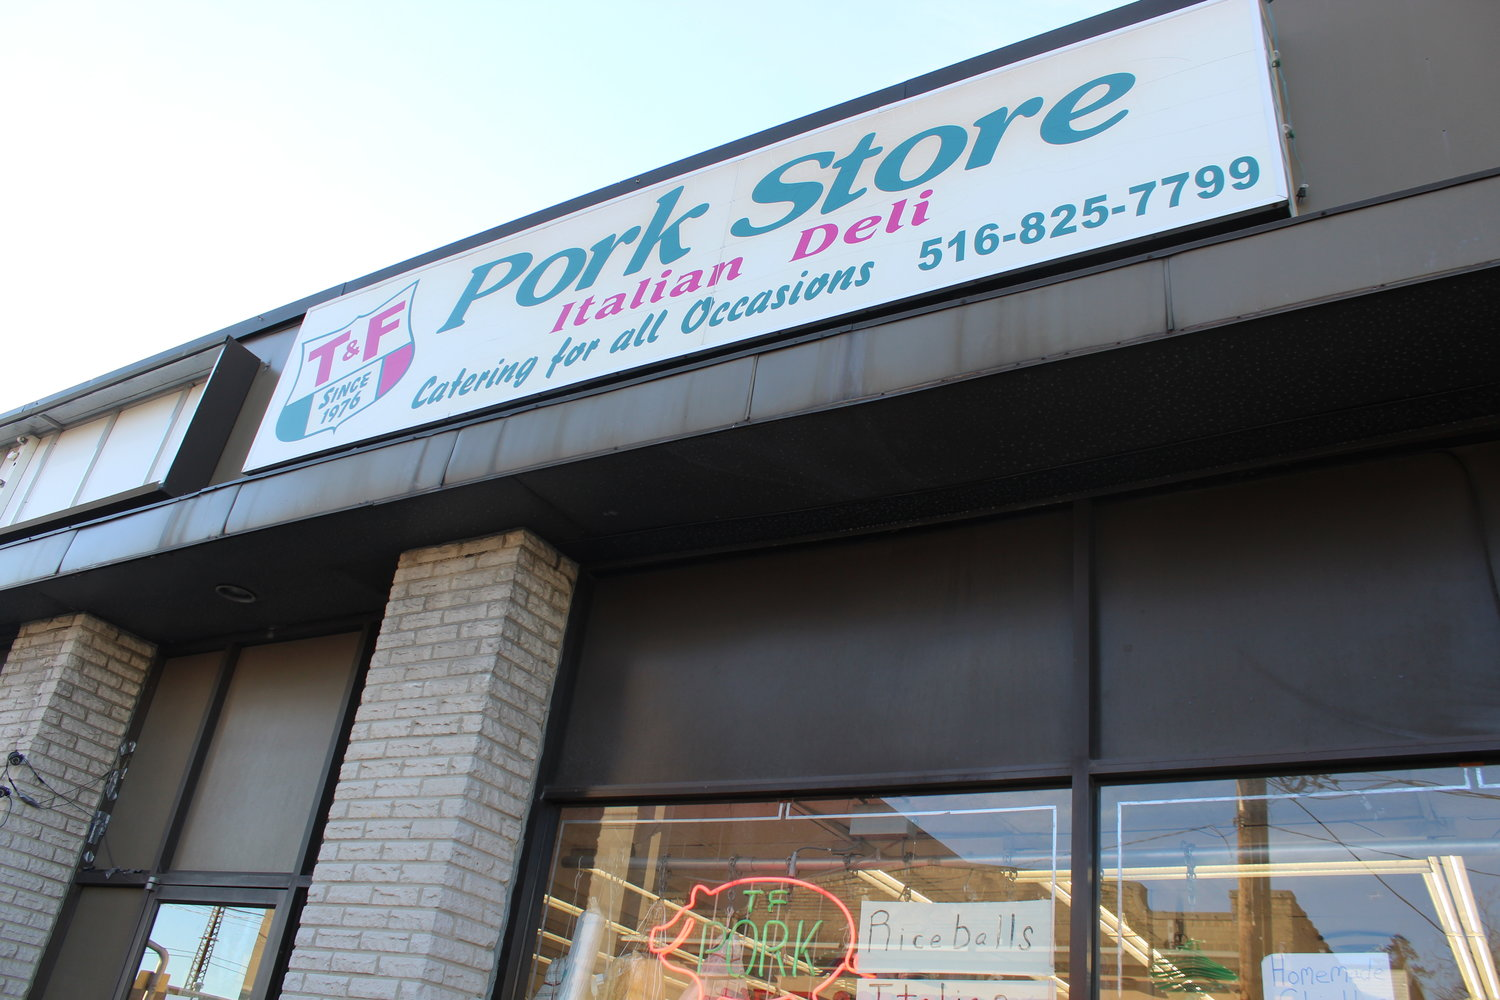 T&F Pork Store was once the only local place Valley Streamers could get authentic Italian groceries.